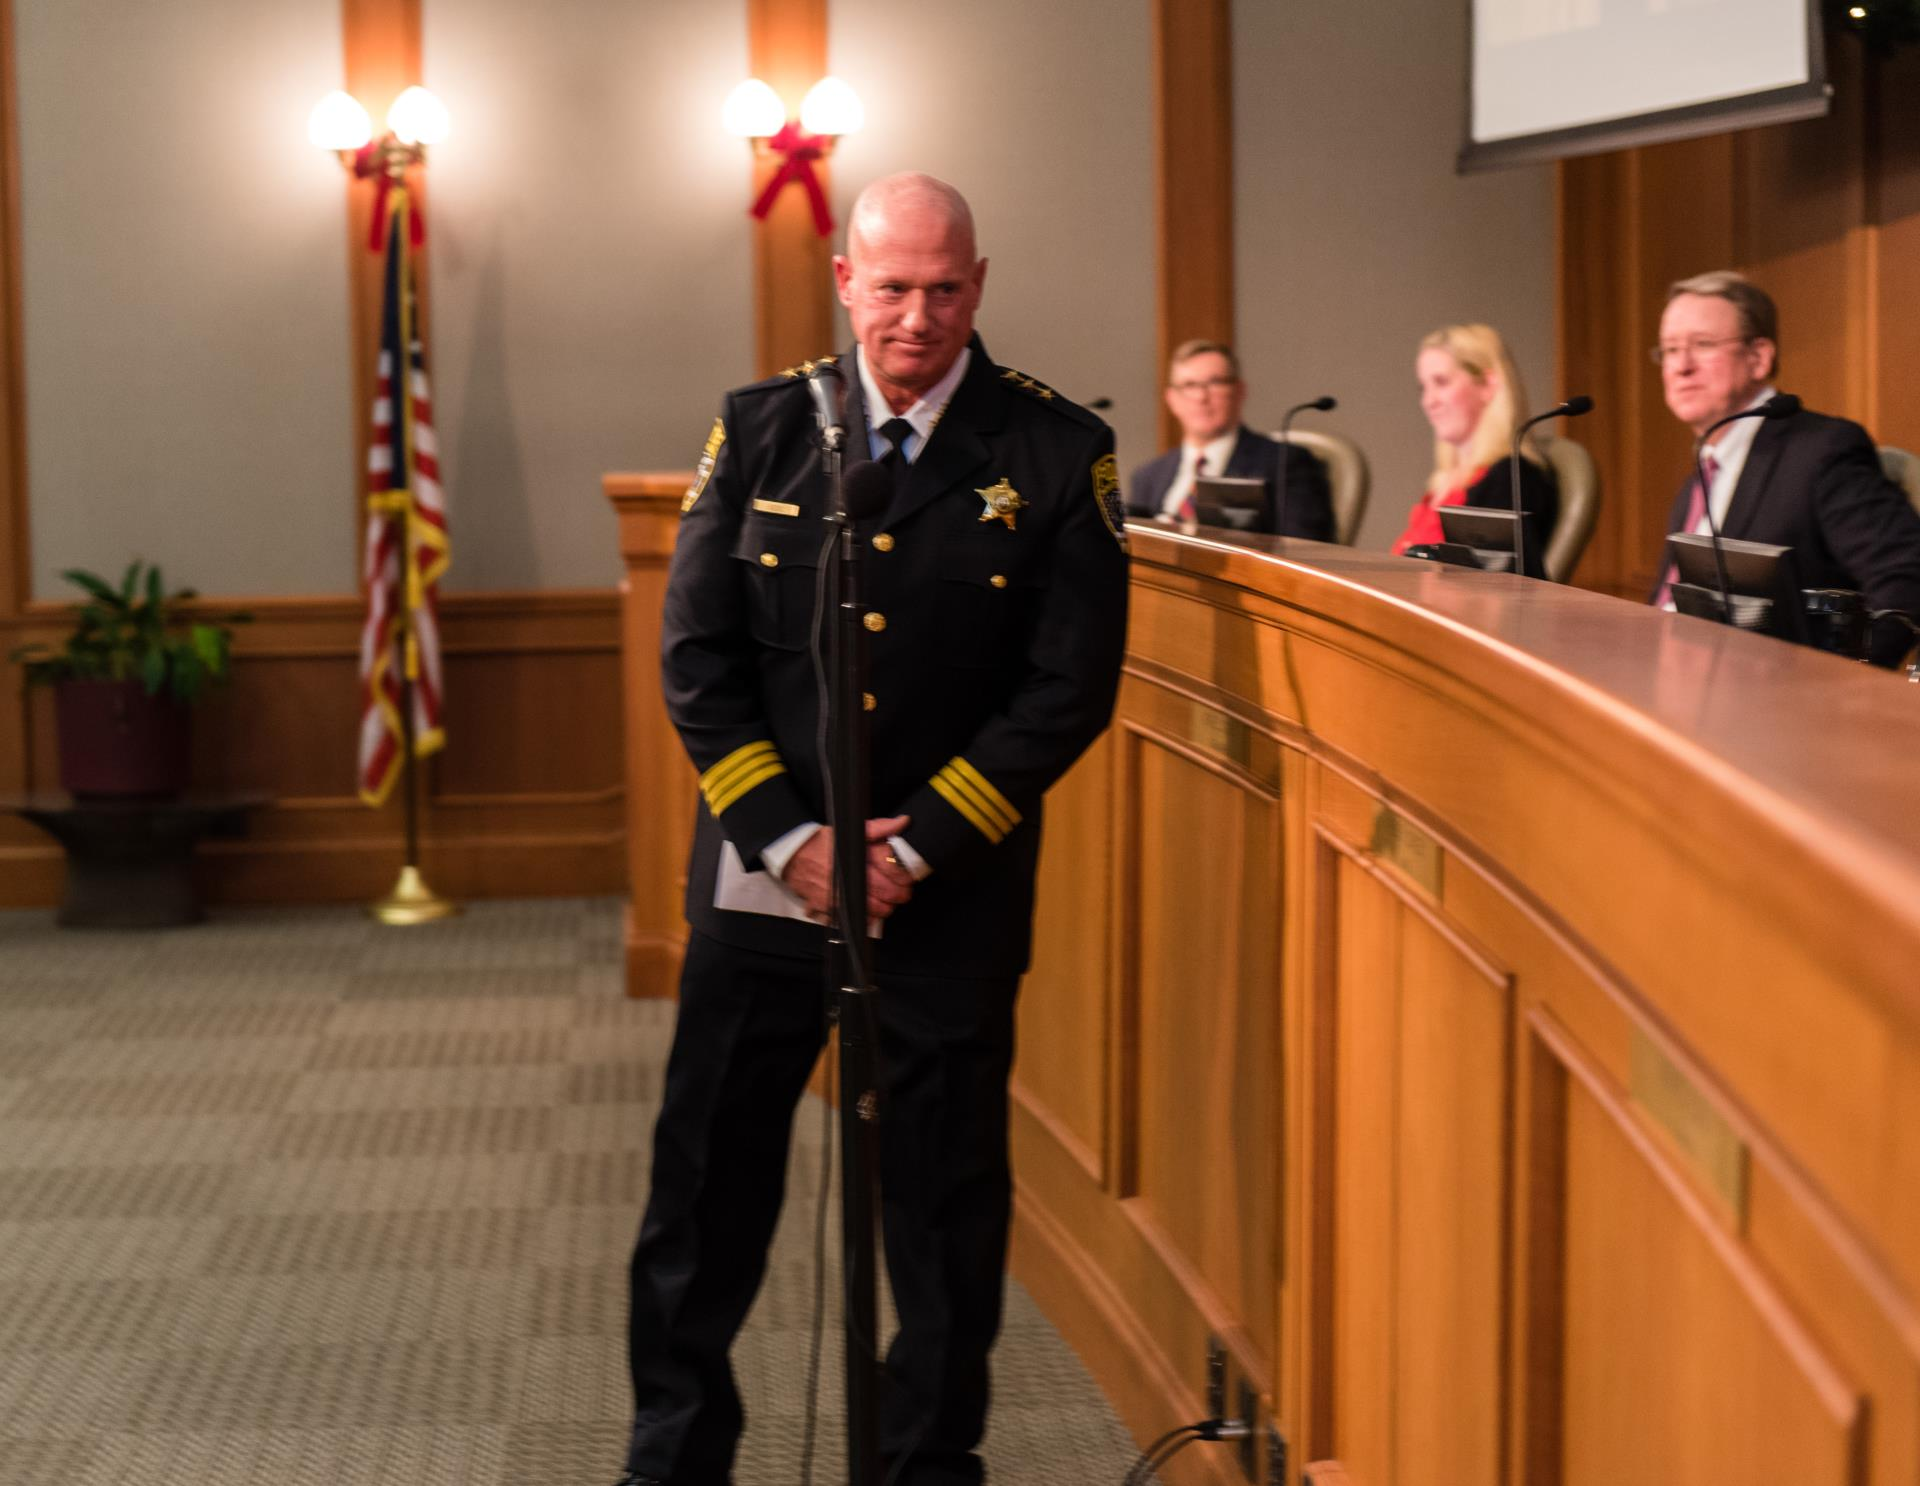 Chief Koziol Swearing-In Ceremony Final-4237